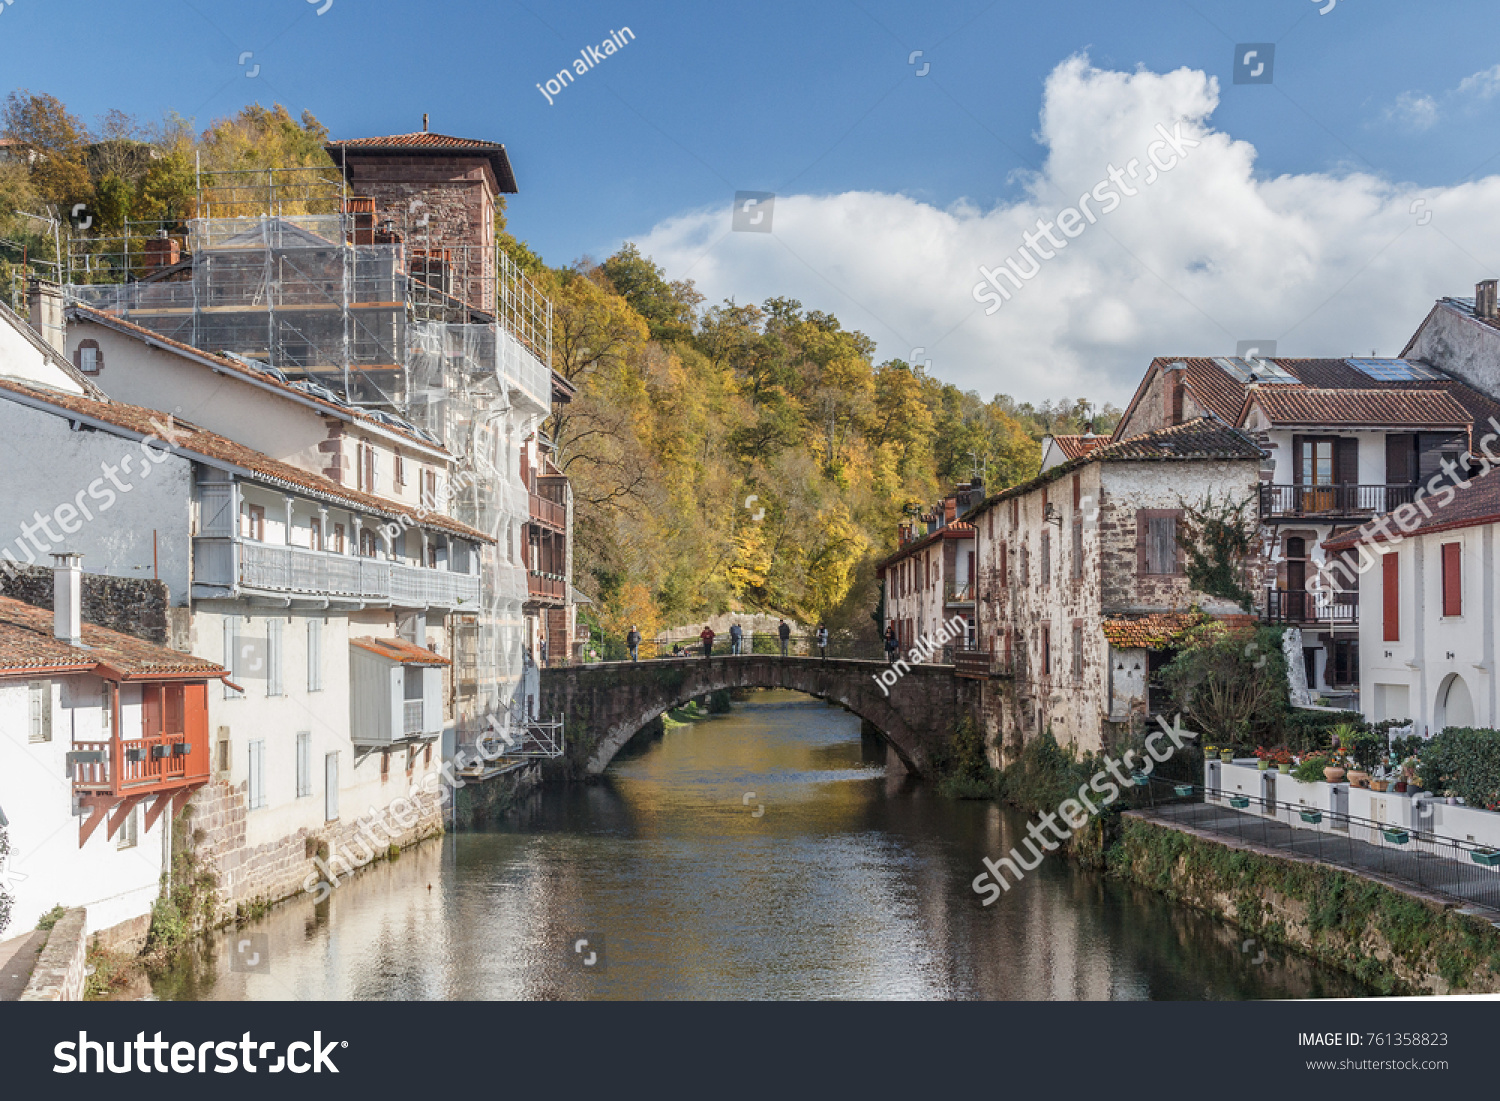 Saint Jean Pied De Port Saint Jean Pied De Port Basque Stock Photo Edit Now 761358823